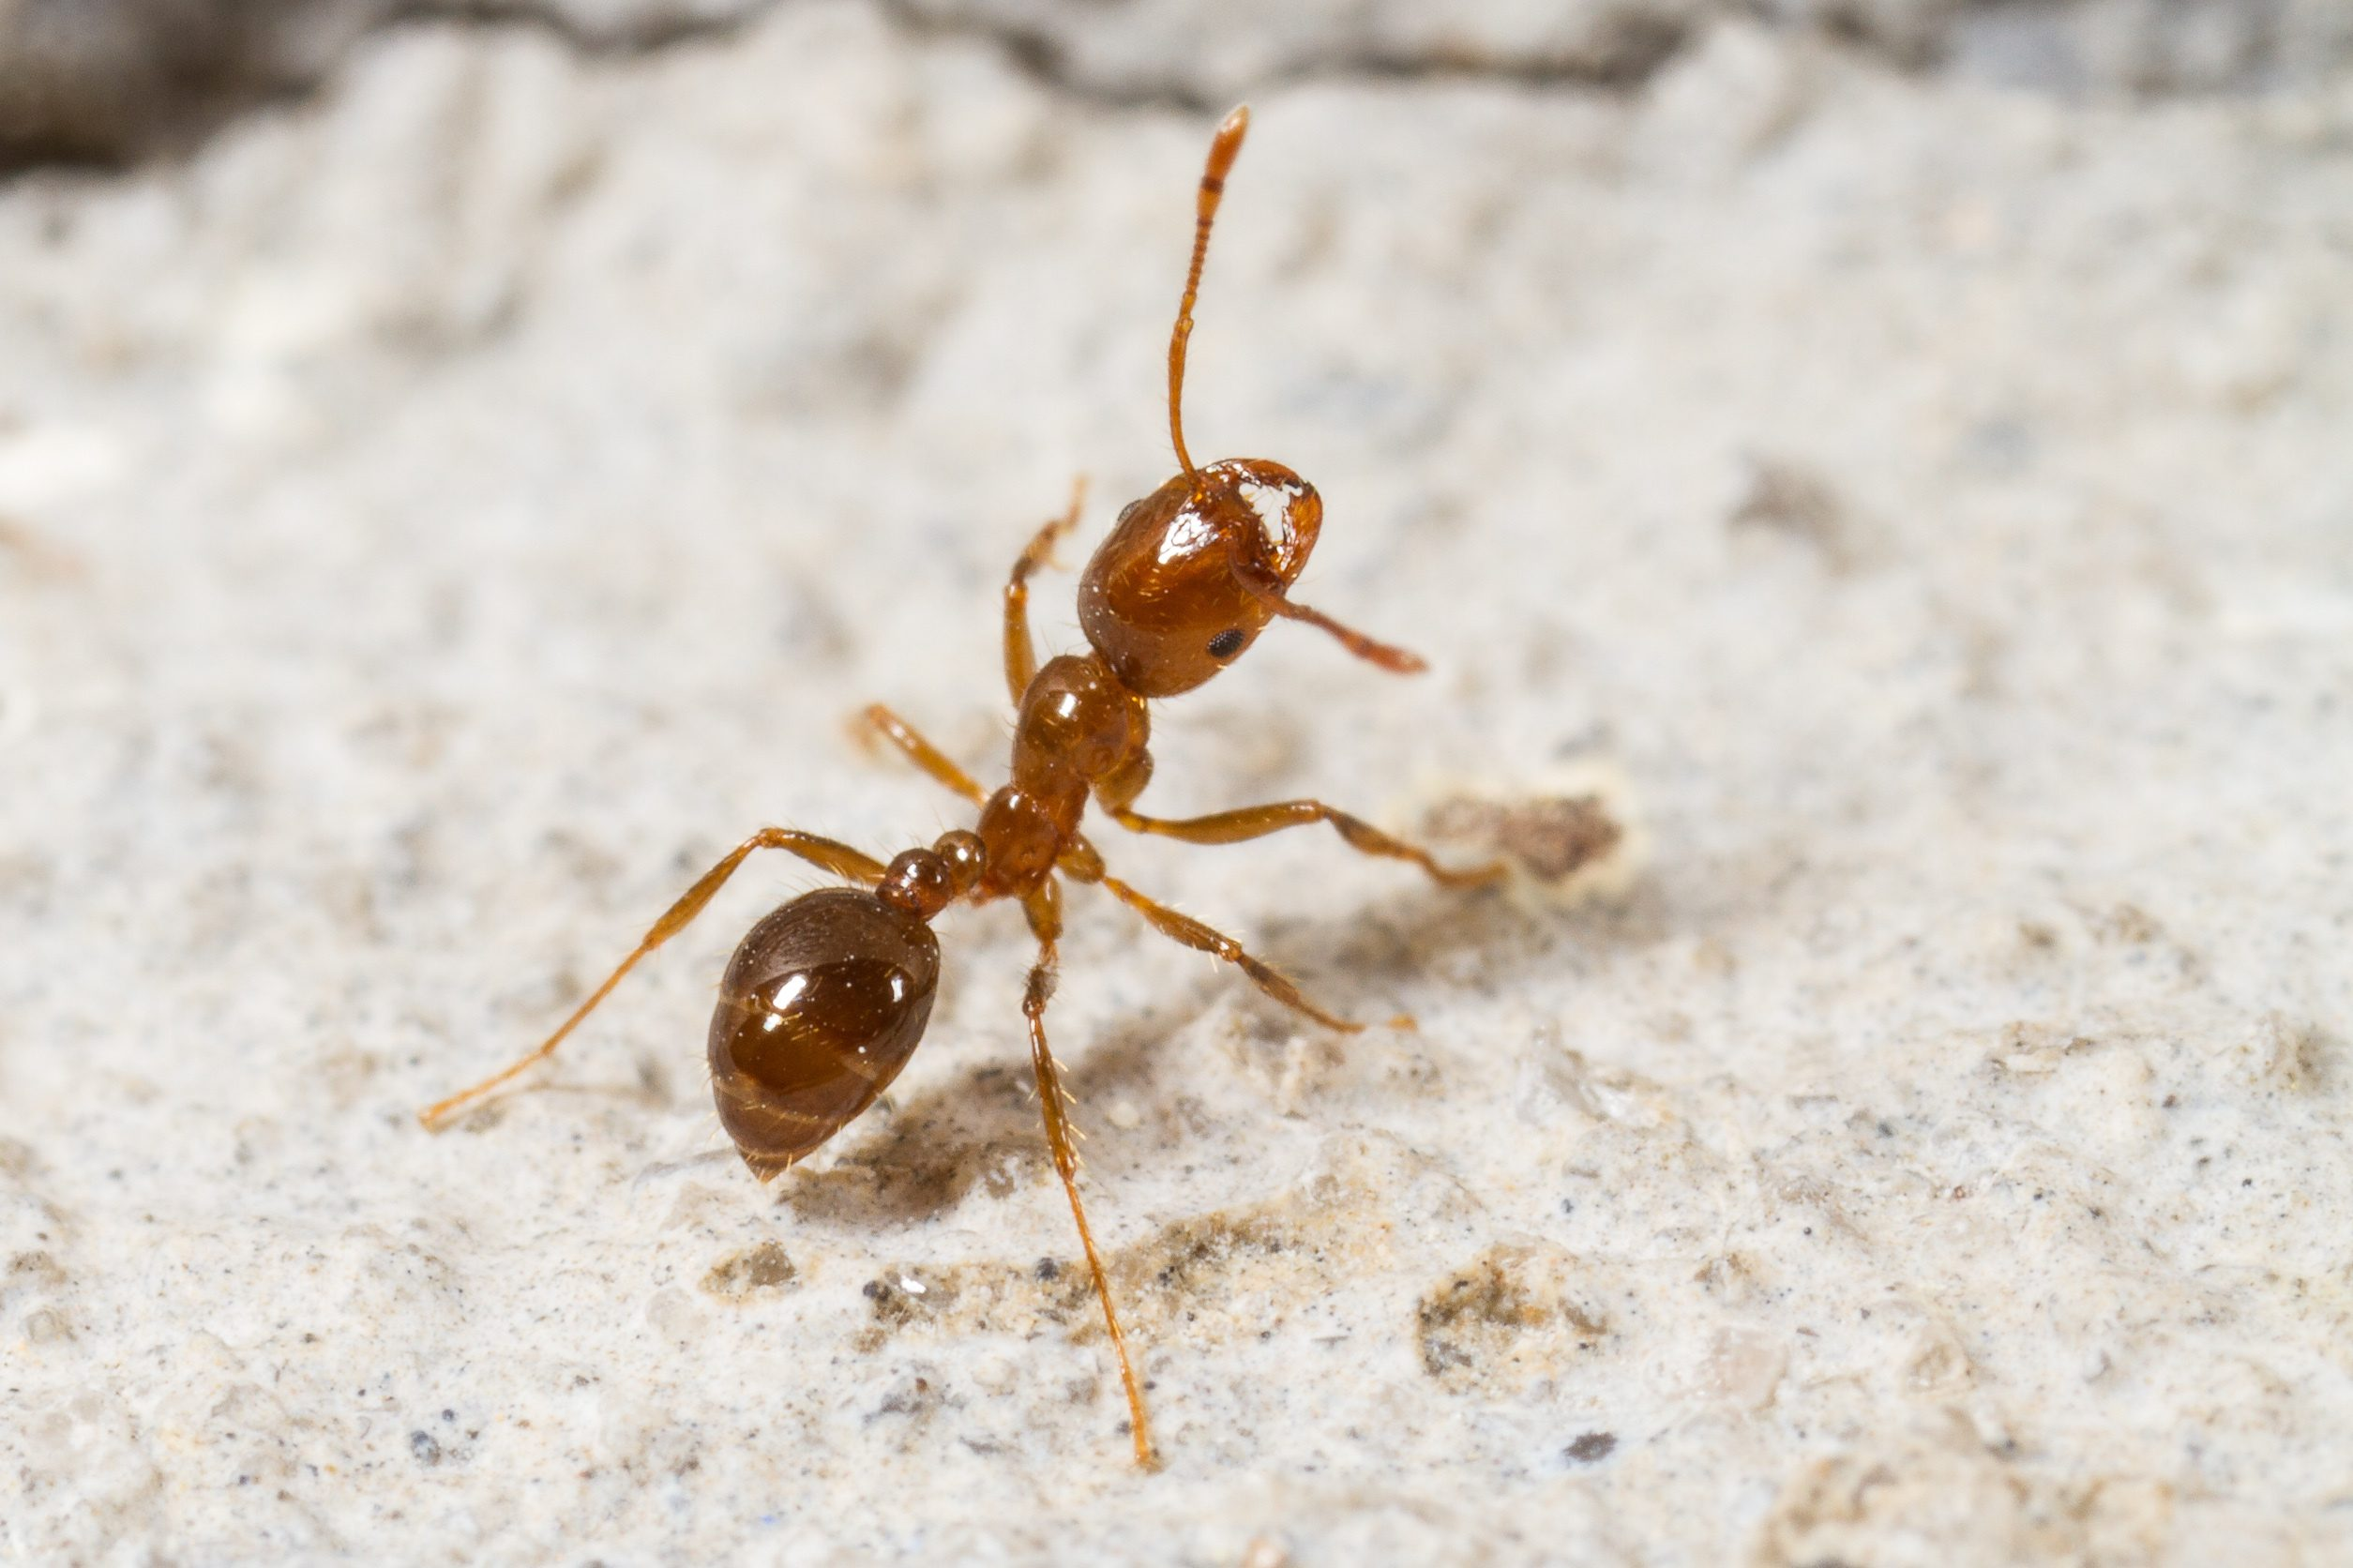 Red Imported Fire Ant, Solenopsis invicta